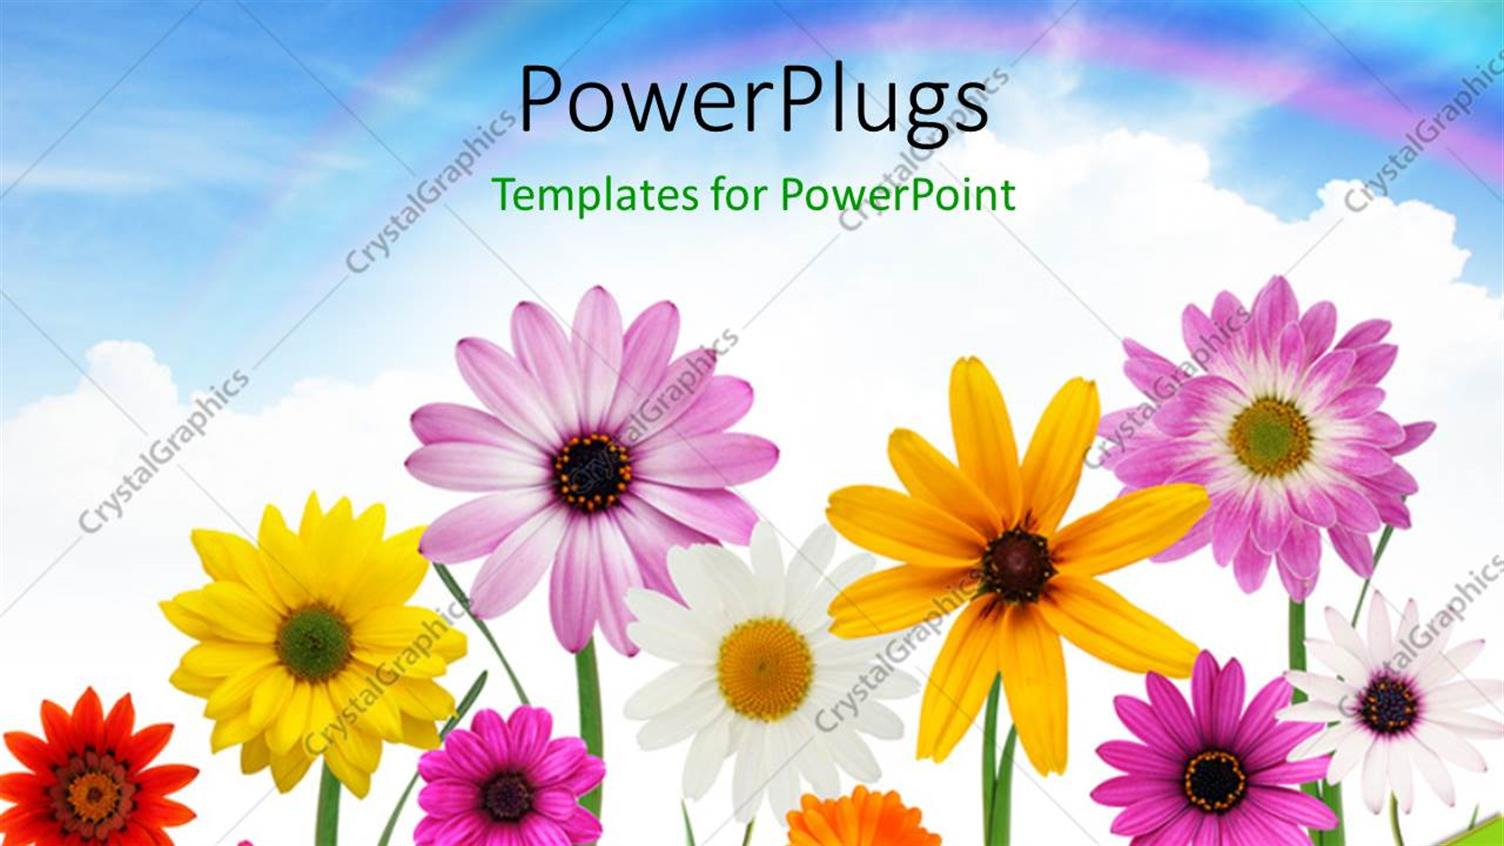 PowerPoint Template Displaying Group of Colorful Summer Daisies and Sunflower with Beautiful Sky in the Background